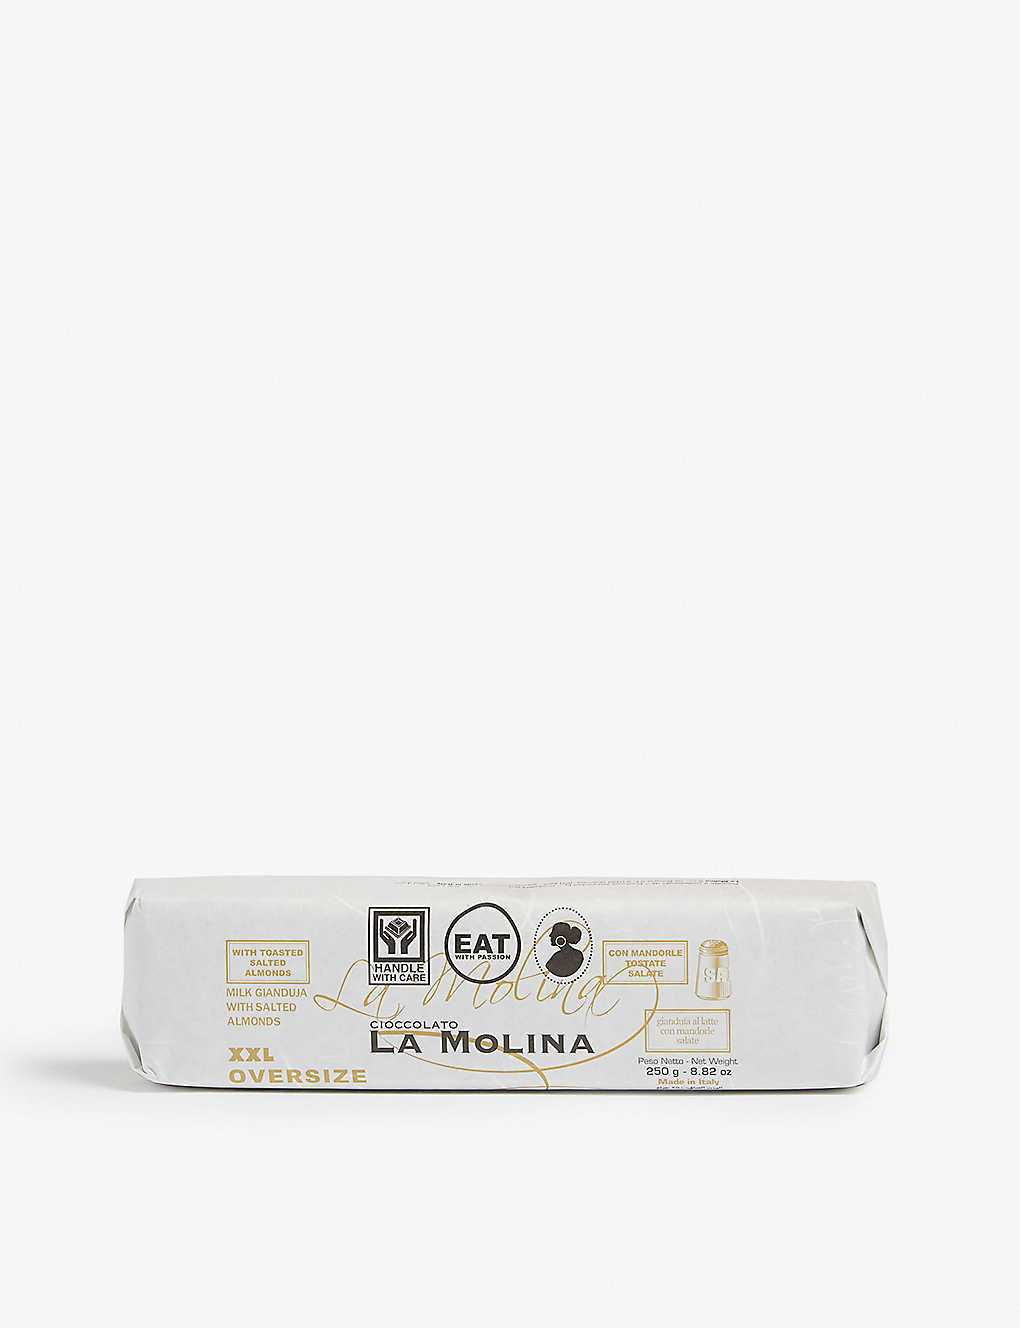 LA MOLINA: XXL milk chocolate gianduja with salted almonds 250g